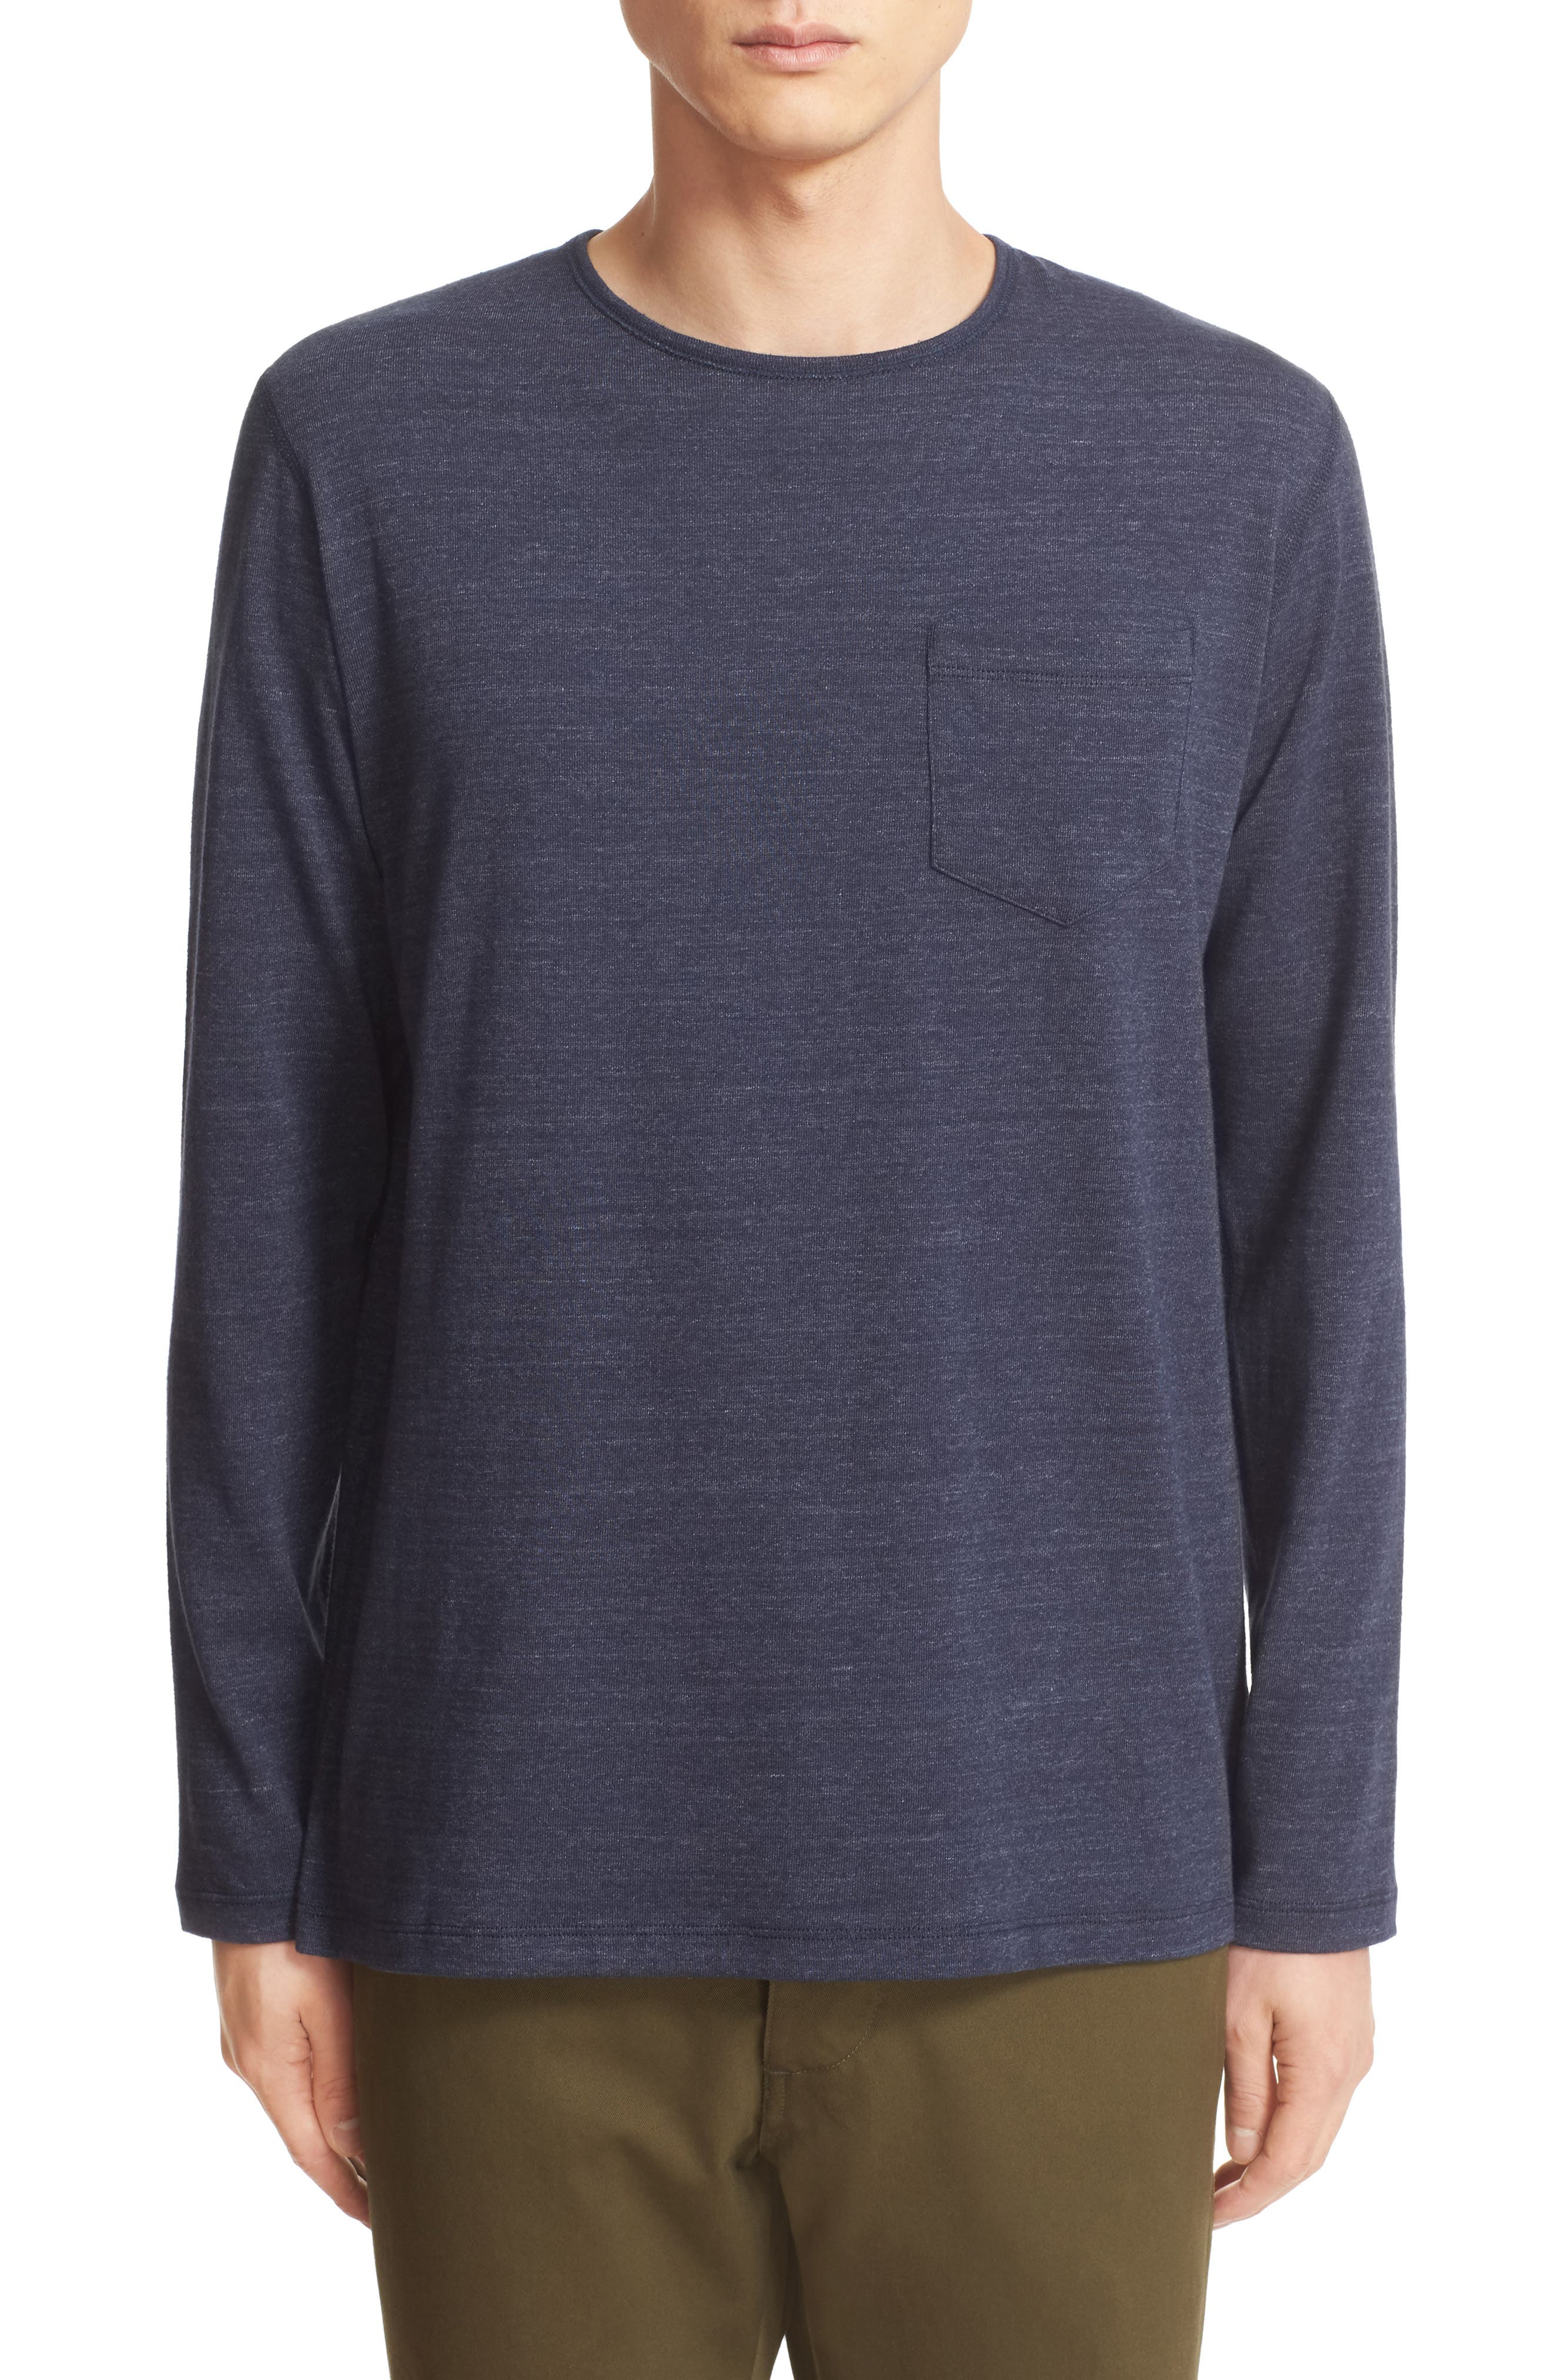 WINGS + HORNS Pocket T-Shirt